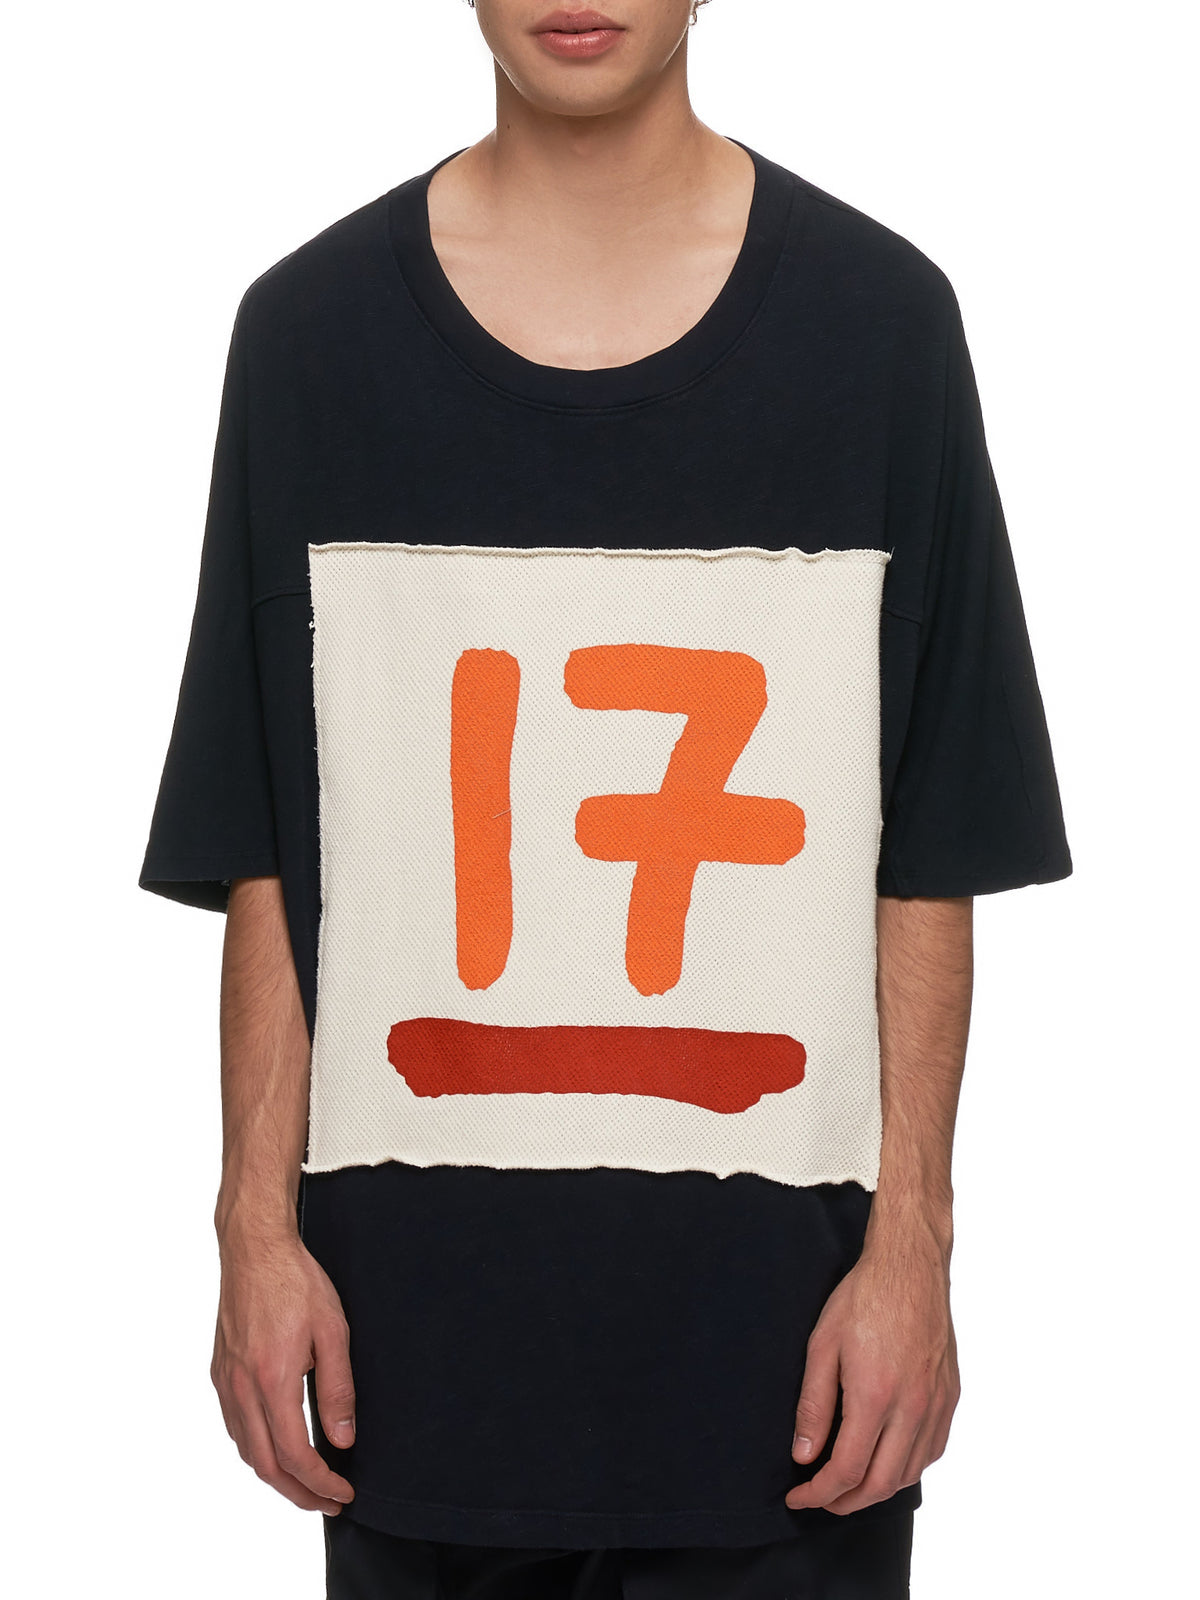 Patch Shirt (17-PATCH-SHIRT-BLK-ORANGE)